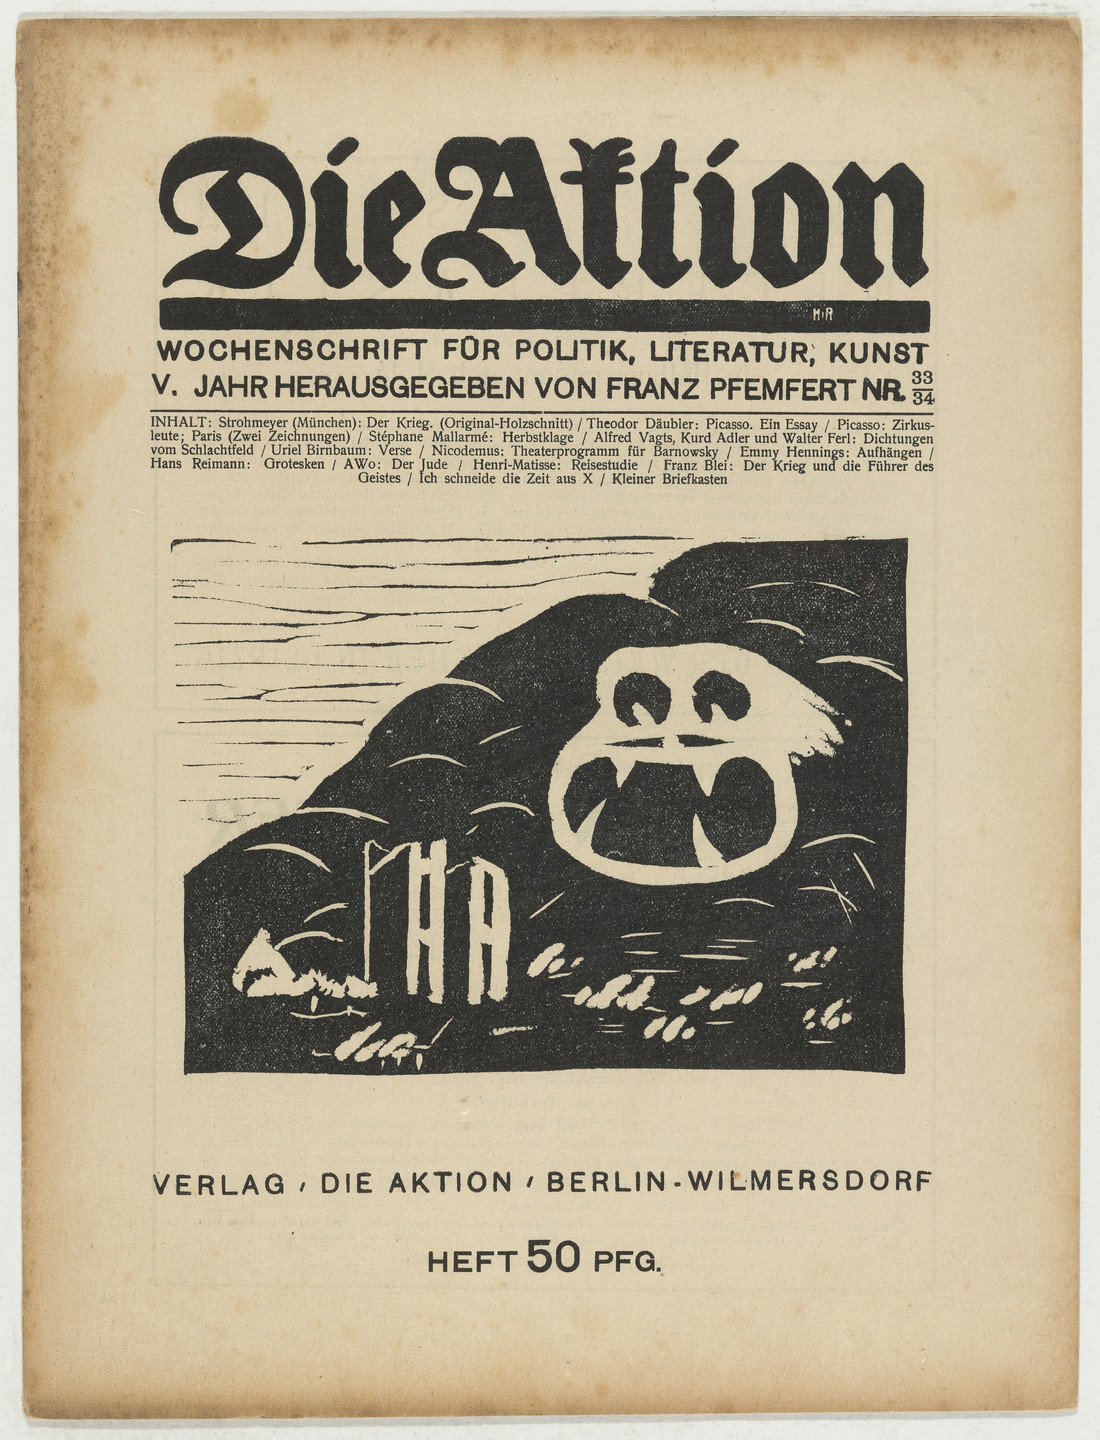 Ottheinrich Strohmeyer. Die Aktion, vol. 5, no. 33/34. August 21, 1915